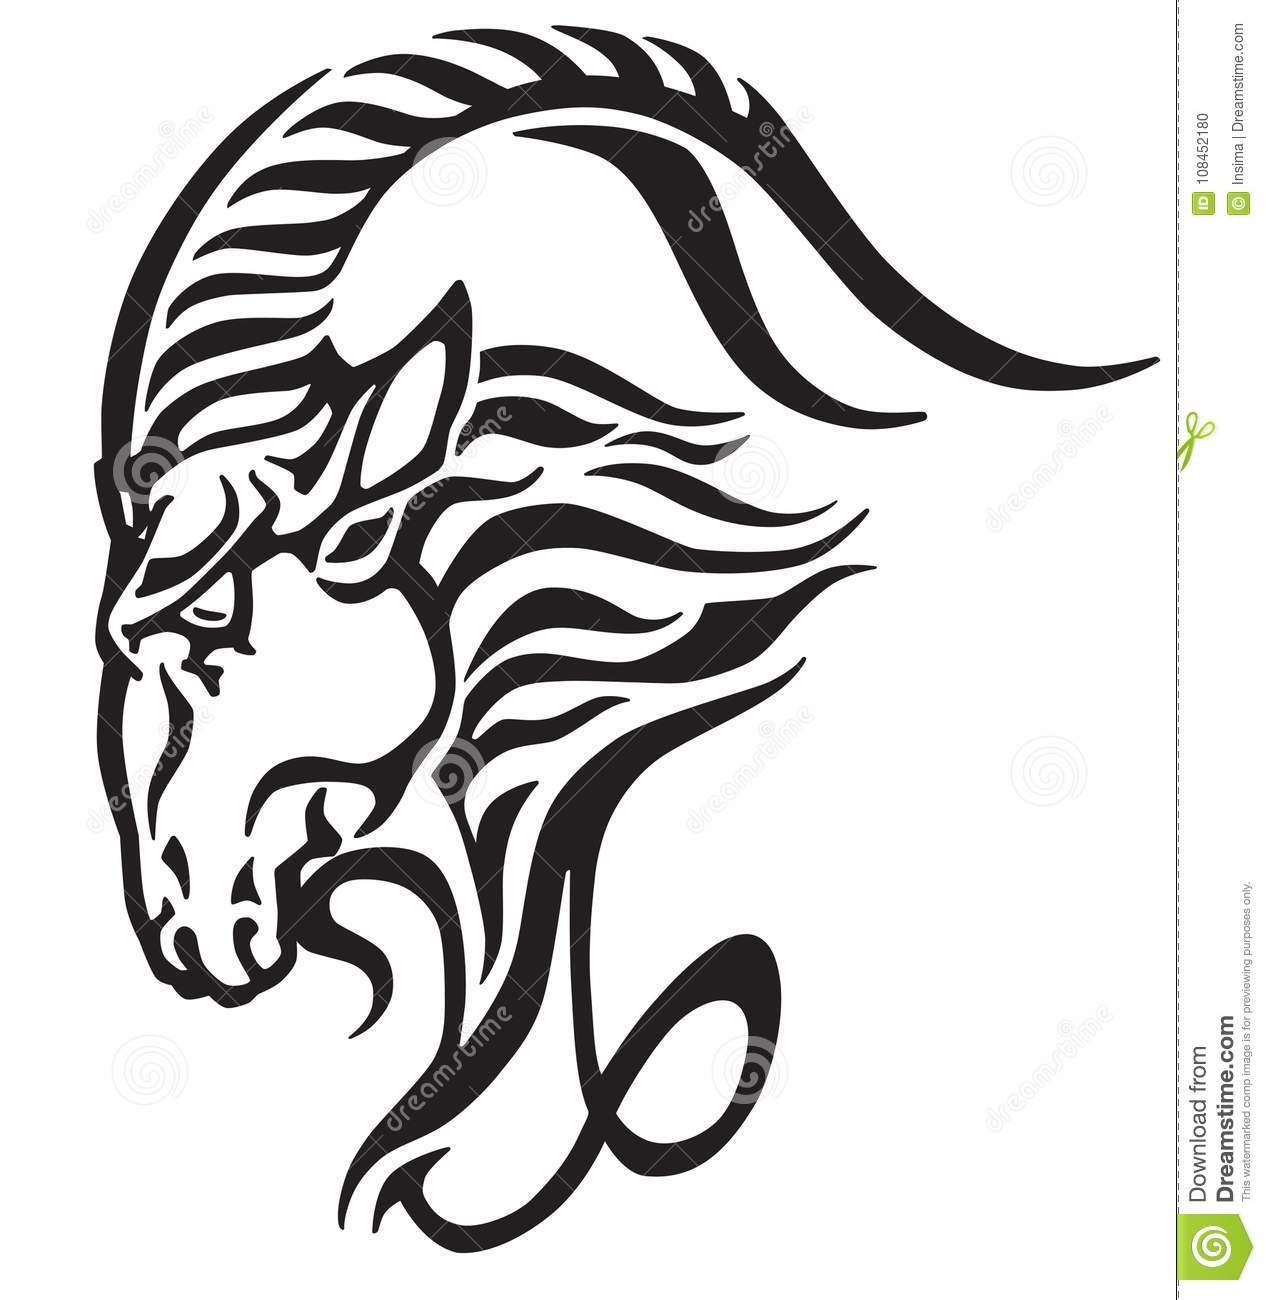 50bb8d648 Capricorn logo. Head of mythological sea goat. Tribal tattoo style  astrological sign . Black and white vector illustration